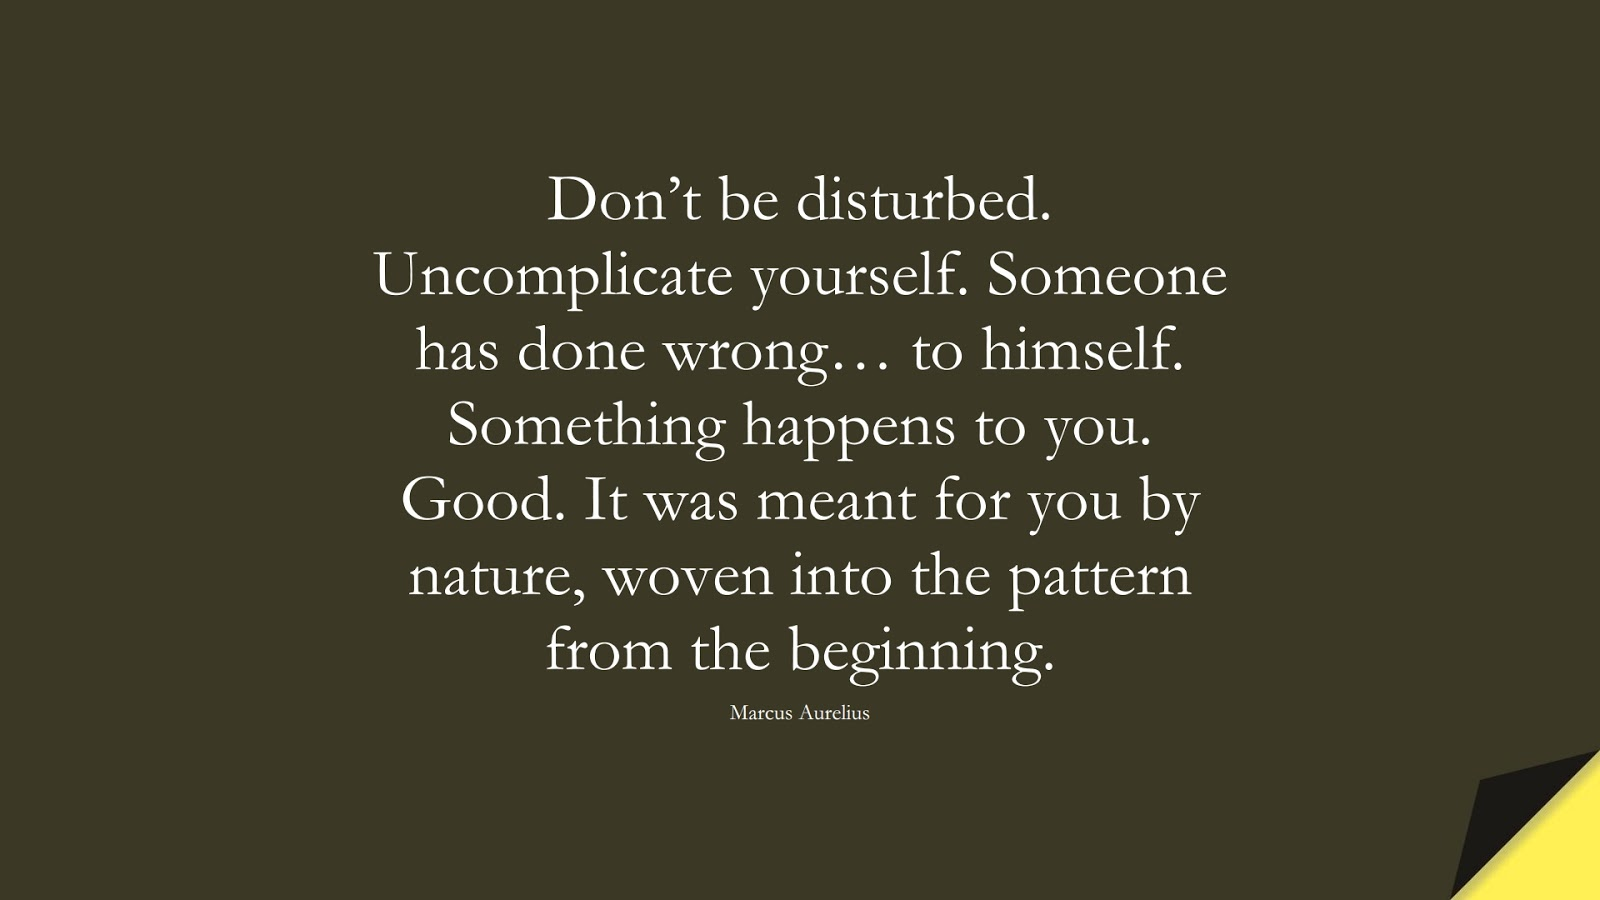 Don't be disturbed. Uncomplicate yourself. Someone has done wrong… to himself. Something happens to you. Good. It was meant for you by nature, woven into the pattern from the beginning. (Marcus Aurelius);  #CharacterQuotes